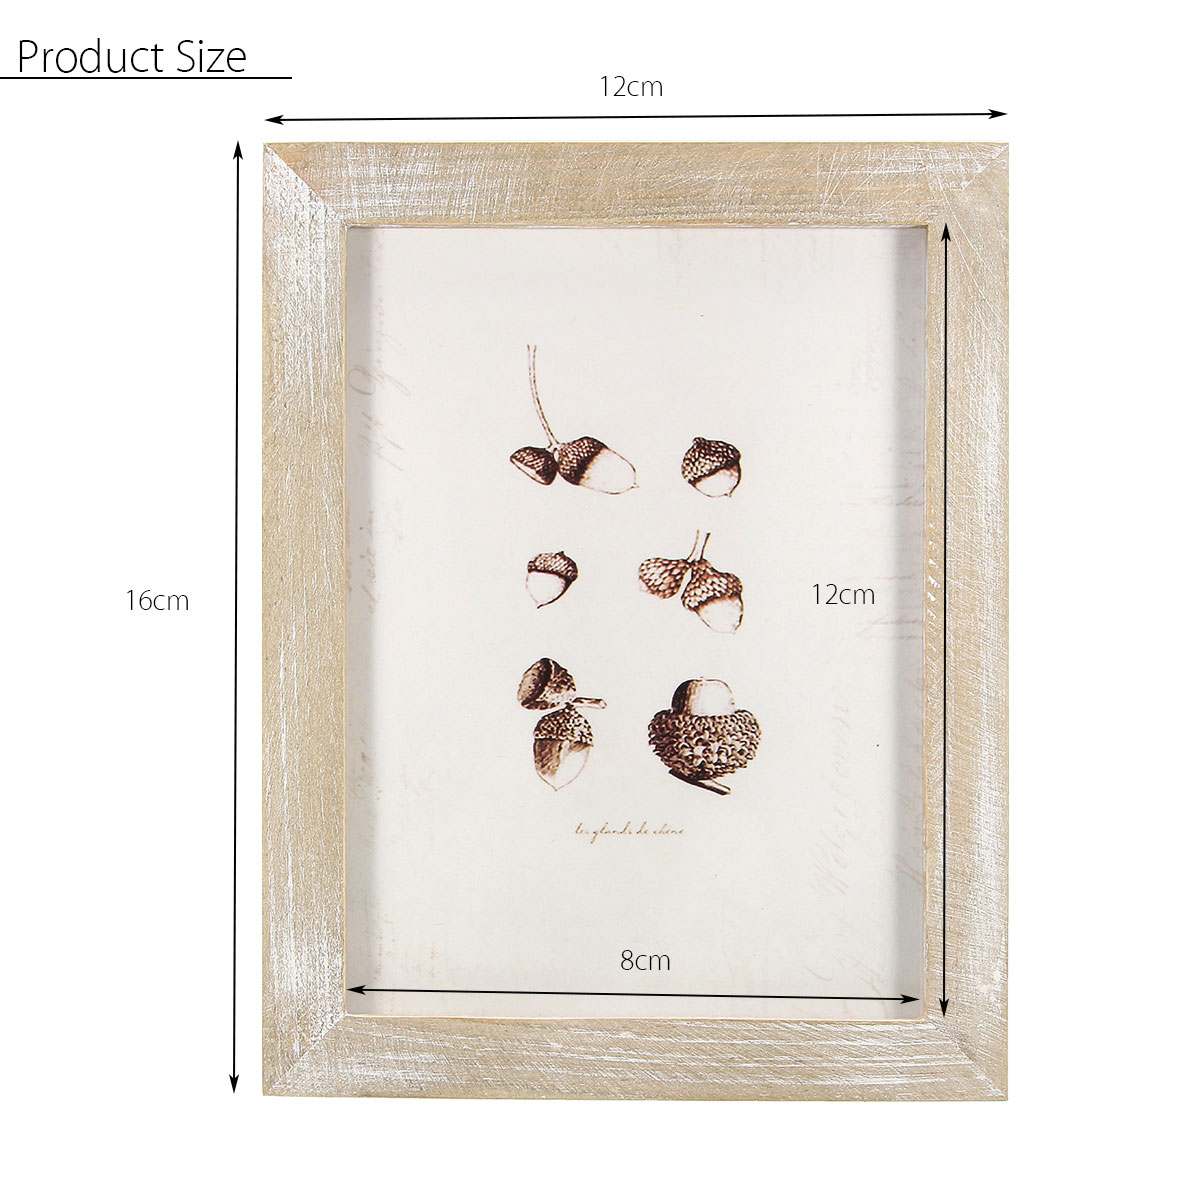 16x12cm/12x8cm Vintage Solid Wood Photo Picture Frame Wall Hanging Shabby Chic Room Decoration